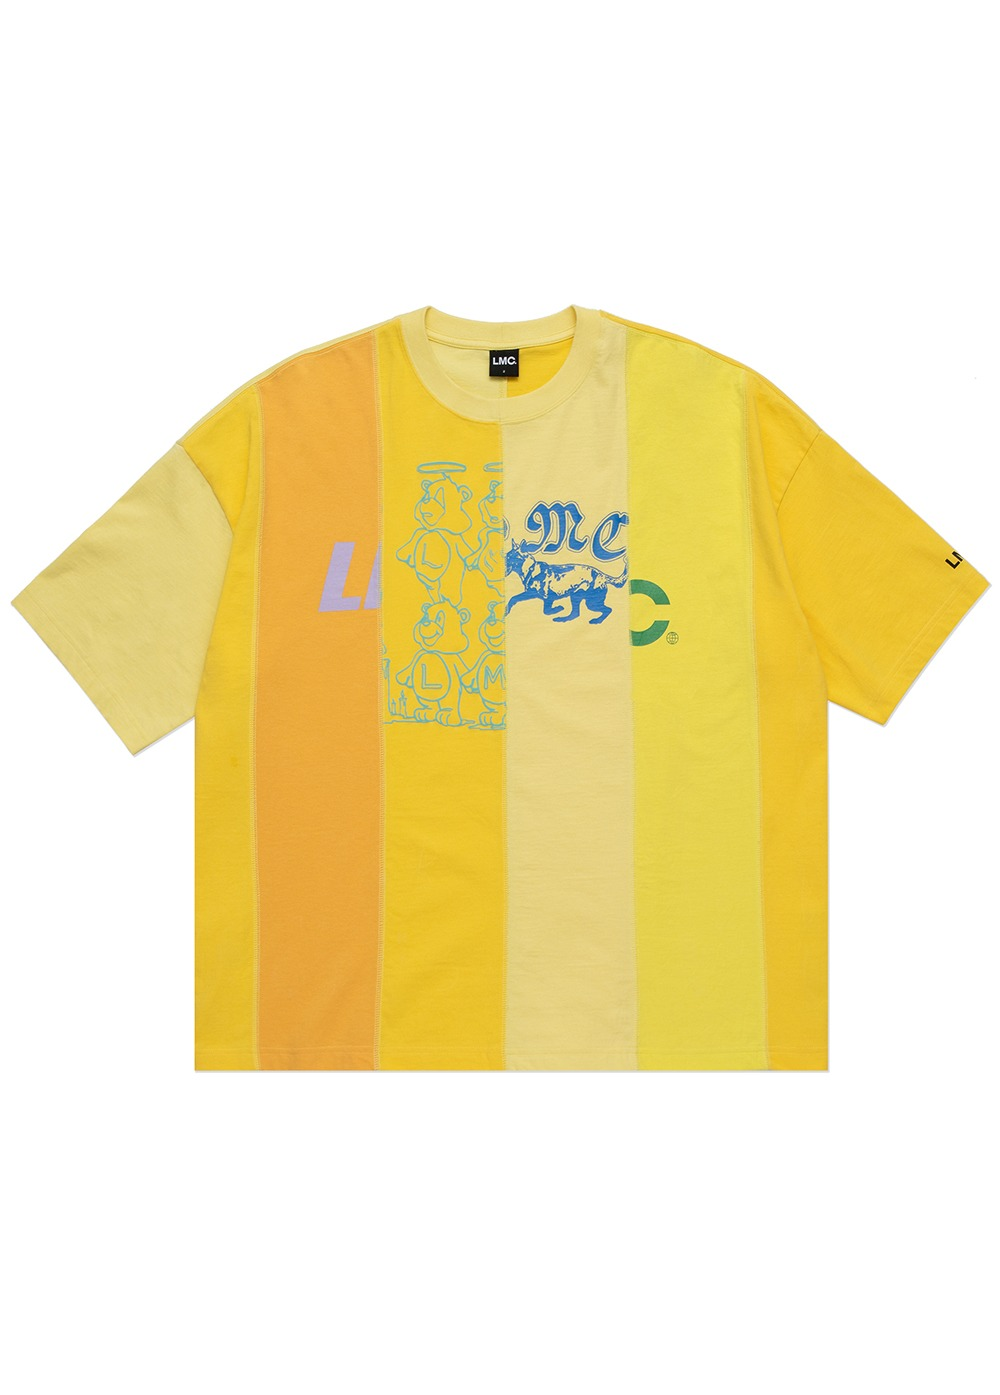 LMC REWORKED OVERSIZED TEE yellow